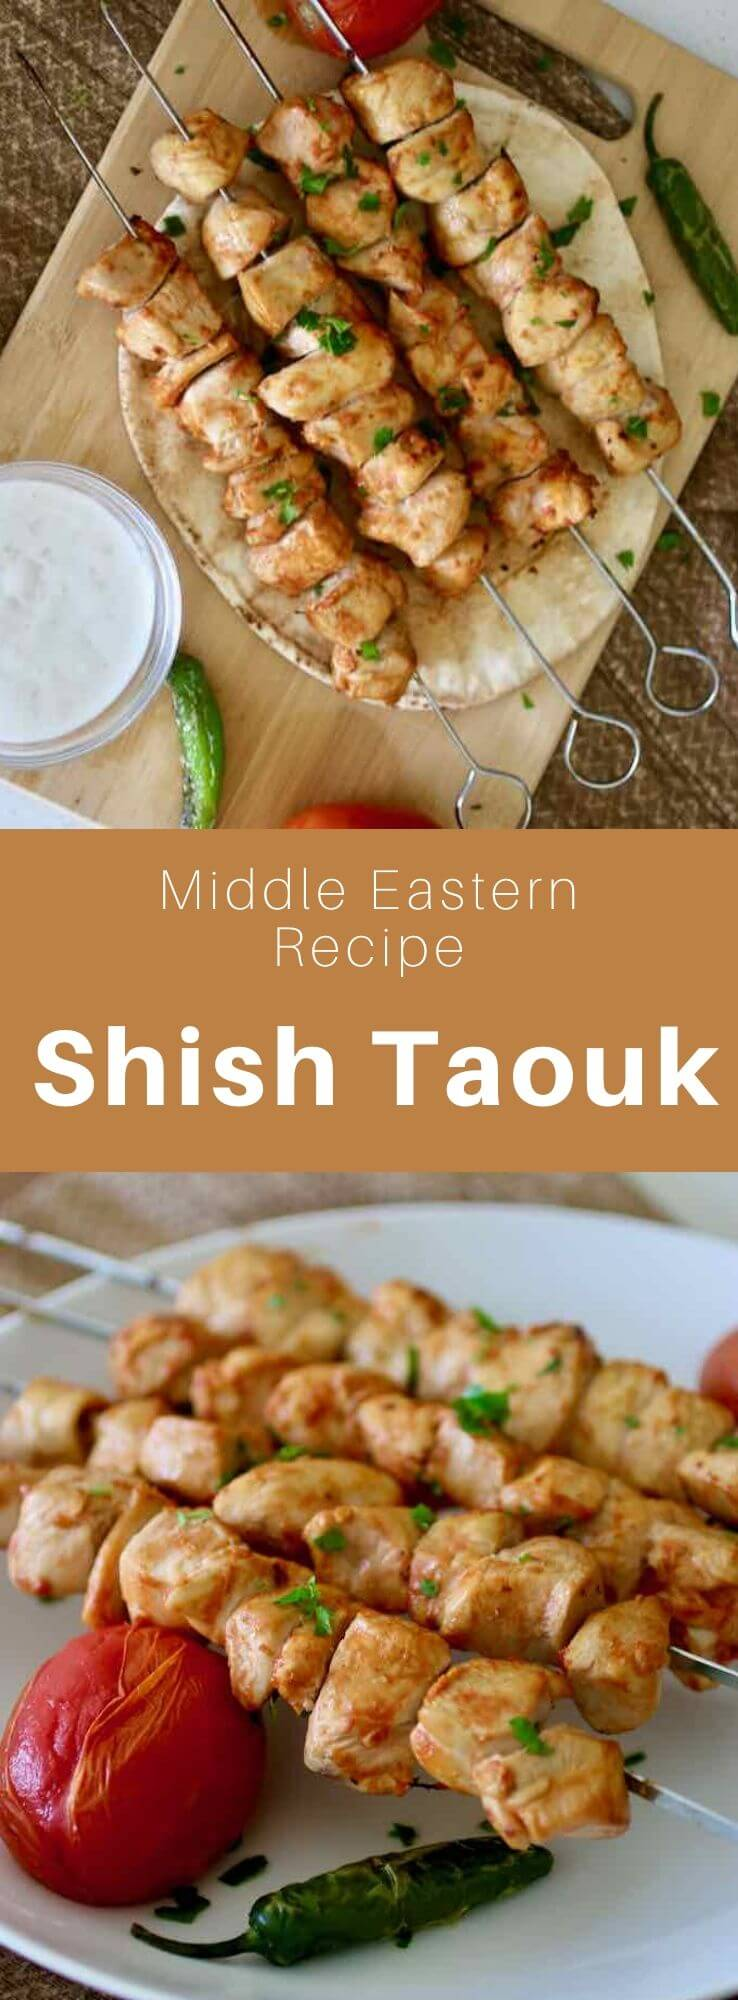 Şiş tavuk (or shish taouk) is a delicious recipe for marinated chicken breast kebabs, traditional from the Middle East. #Turkey #Turkish #TurkishRecipe #TurkishFood #TurkishCuisine #WorldCuisine #196flavors